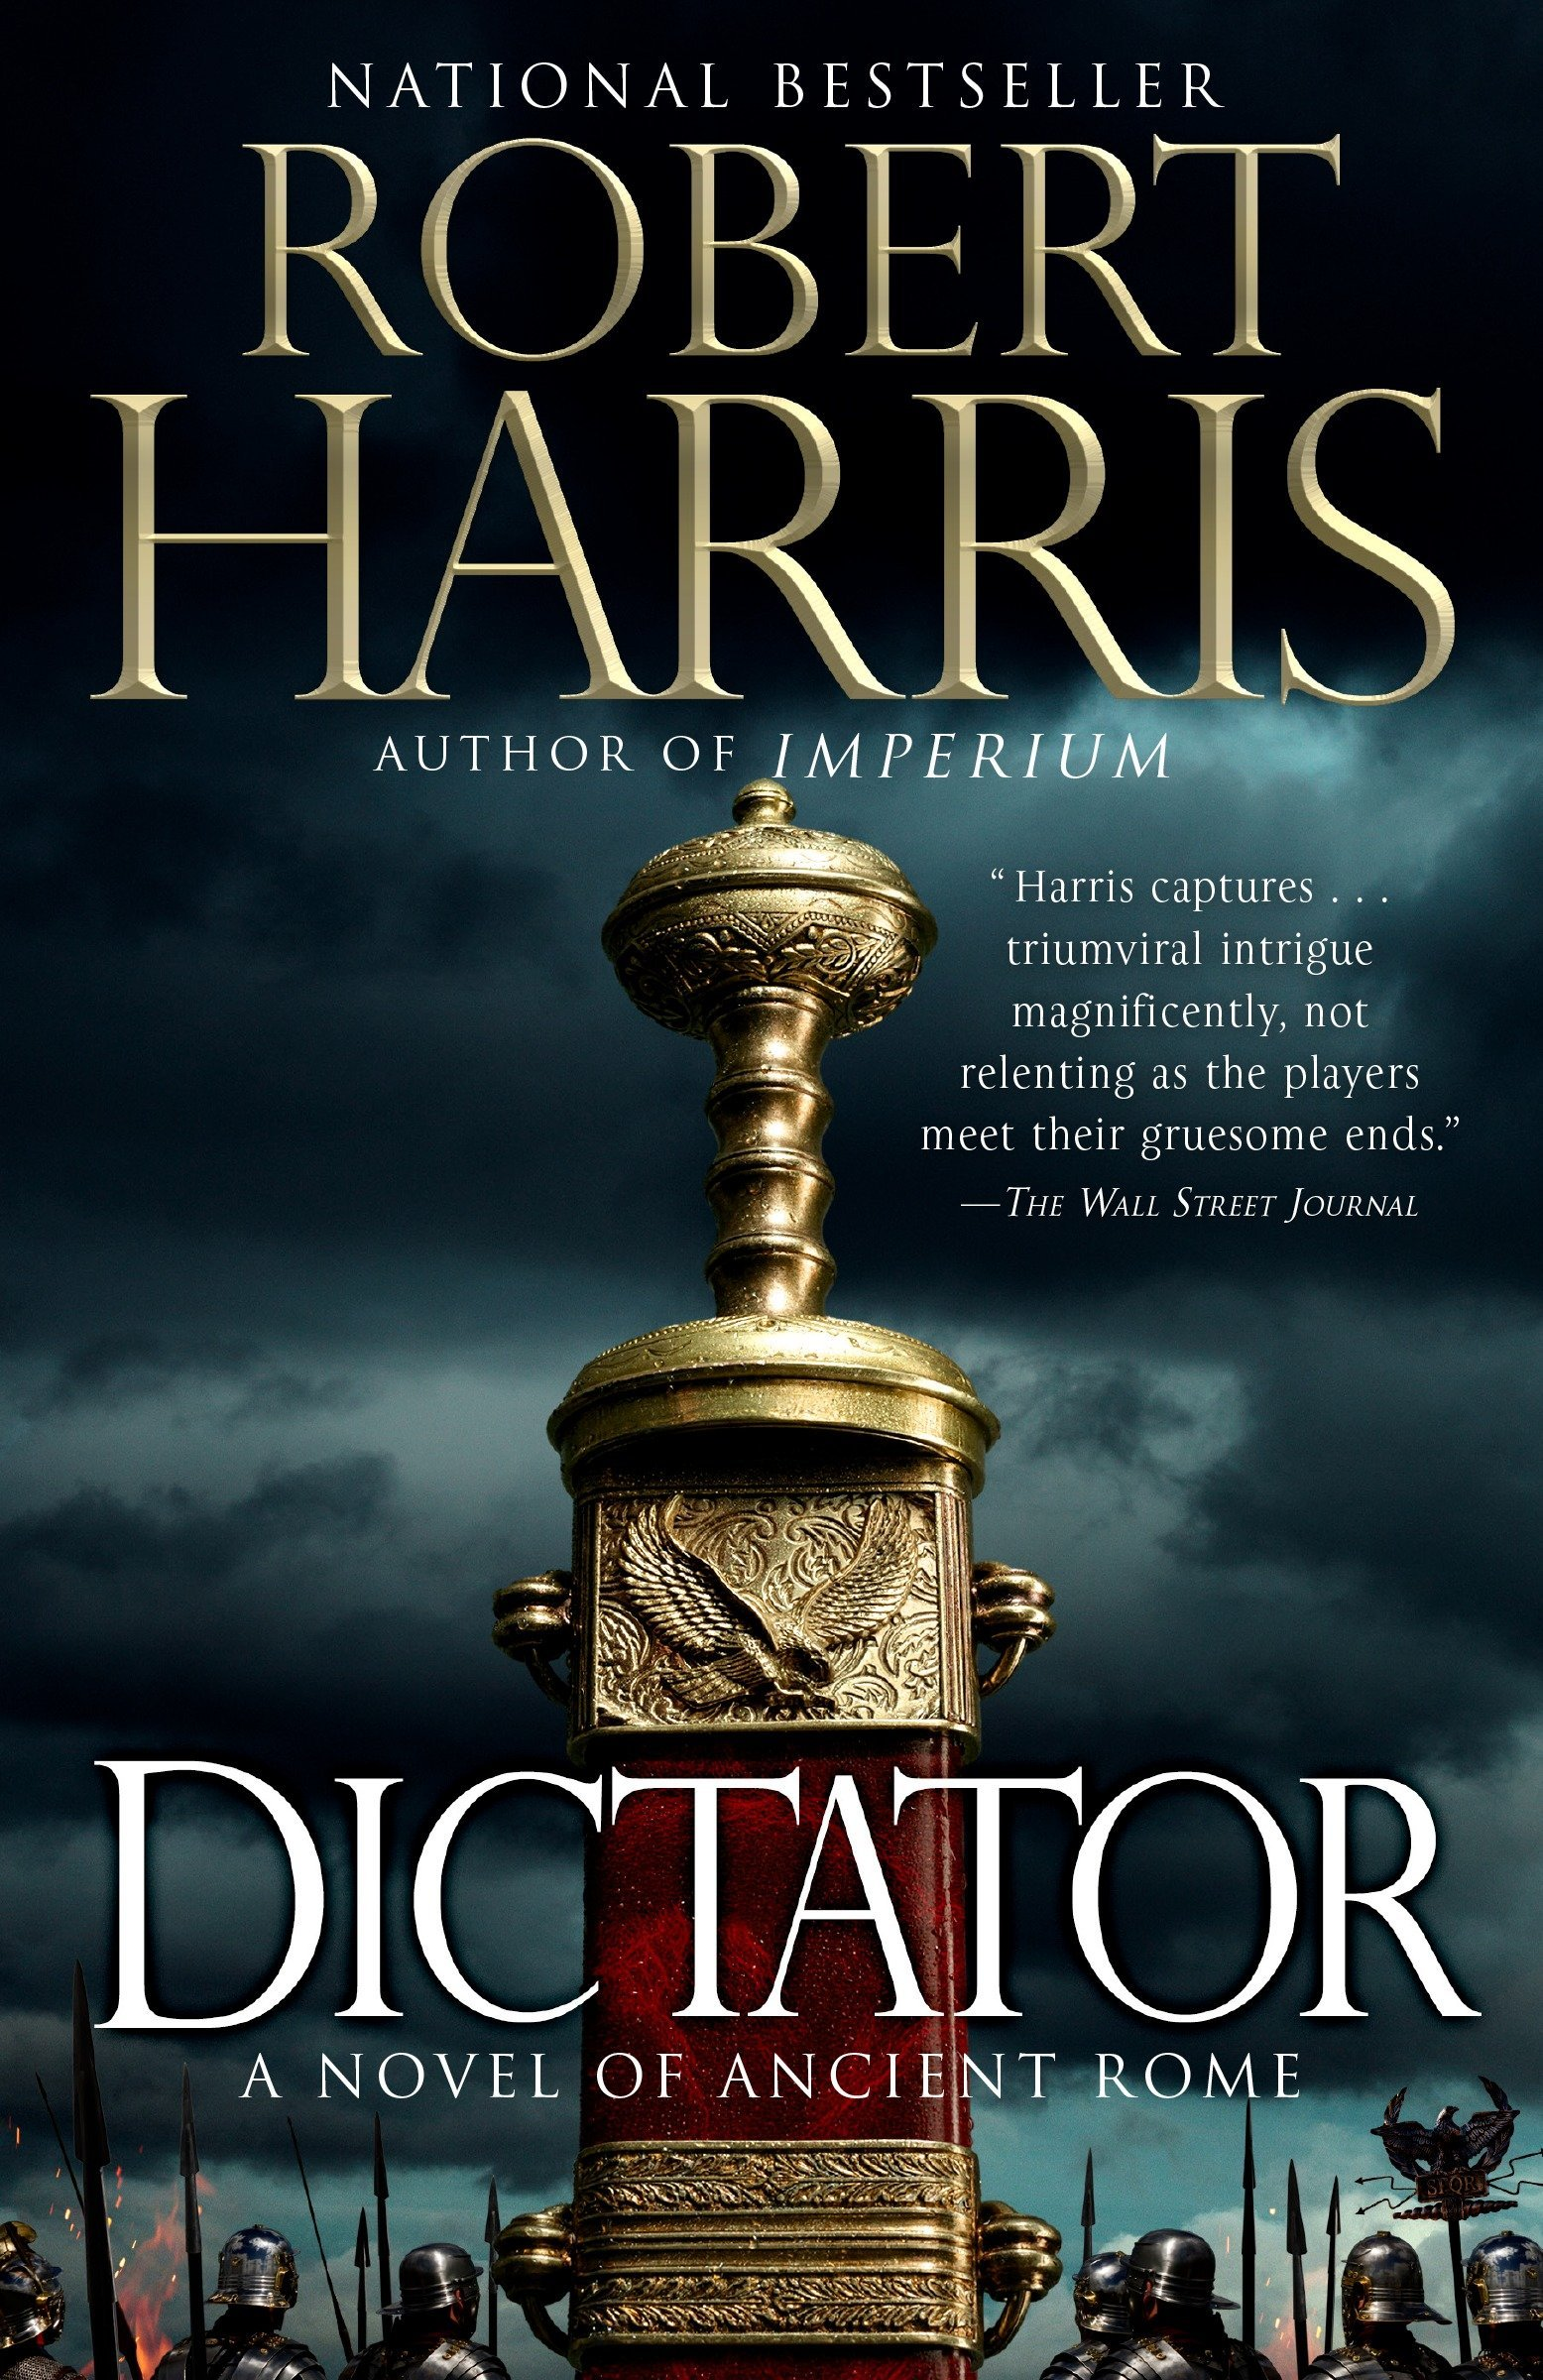 Dictator: A Novel: Robert Harris: 9780307948137: Amazon com